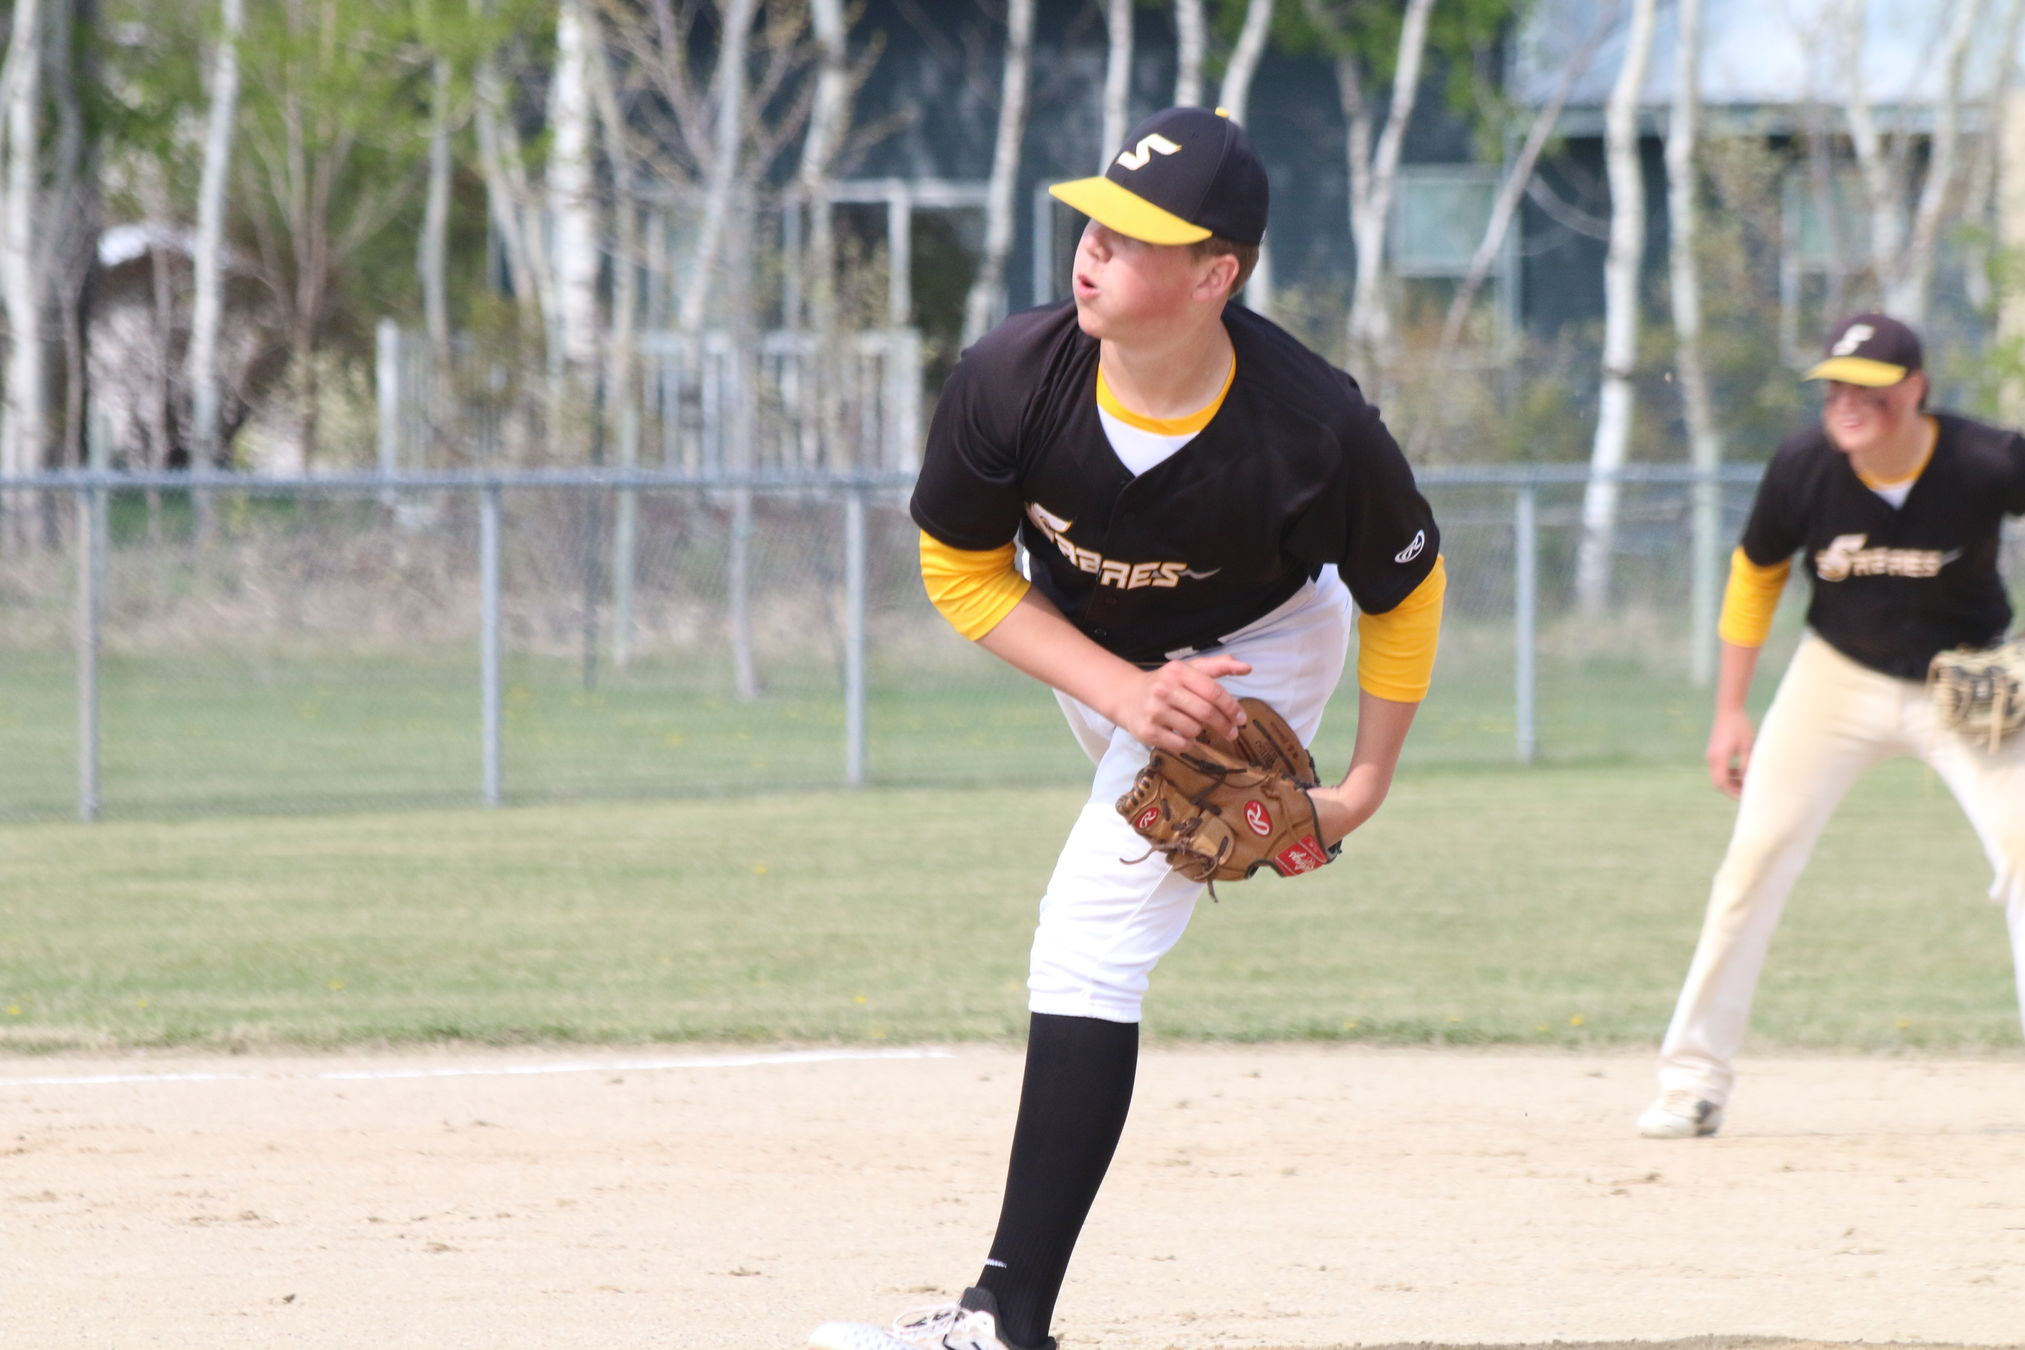 Rylan Penner delivers for the SRSS Sabres during the Zone 13 high school baseball tournament last week in Mitchell. The Sabres, seeded second, begin play Thursday in the Provincial High School Baseball Championships at Optimist Park in Winnipeg.